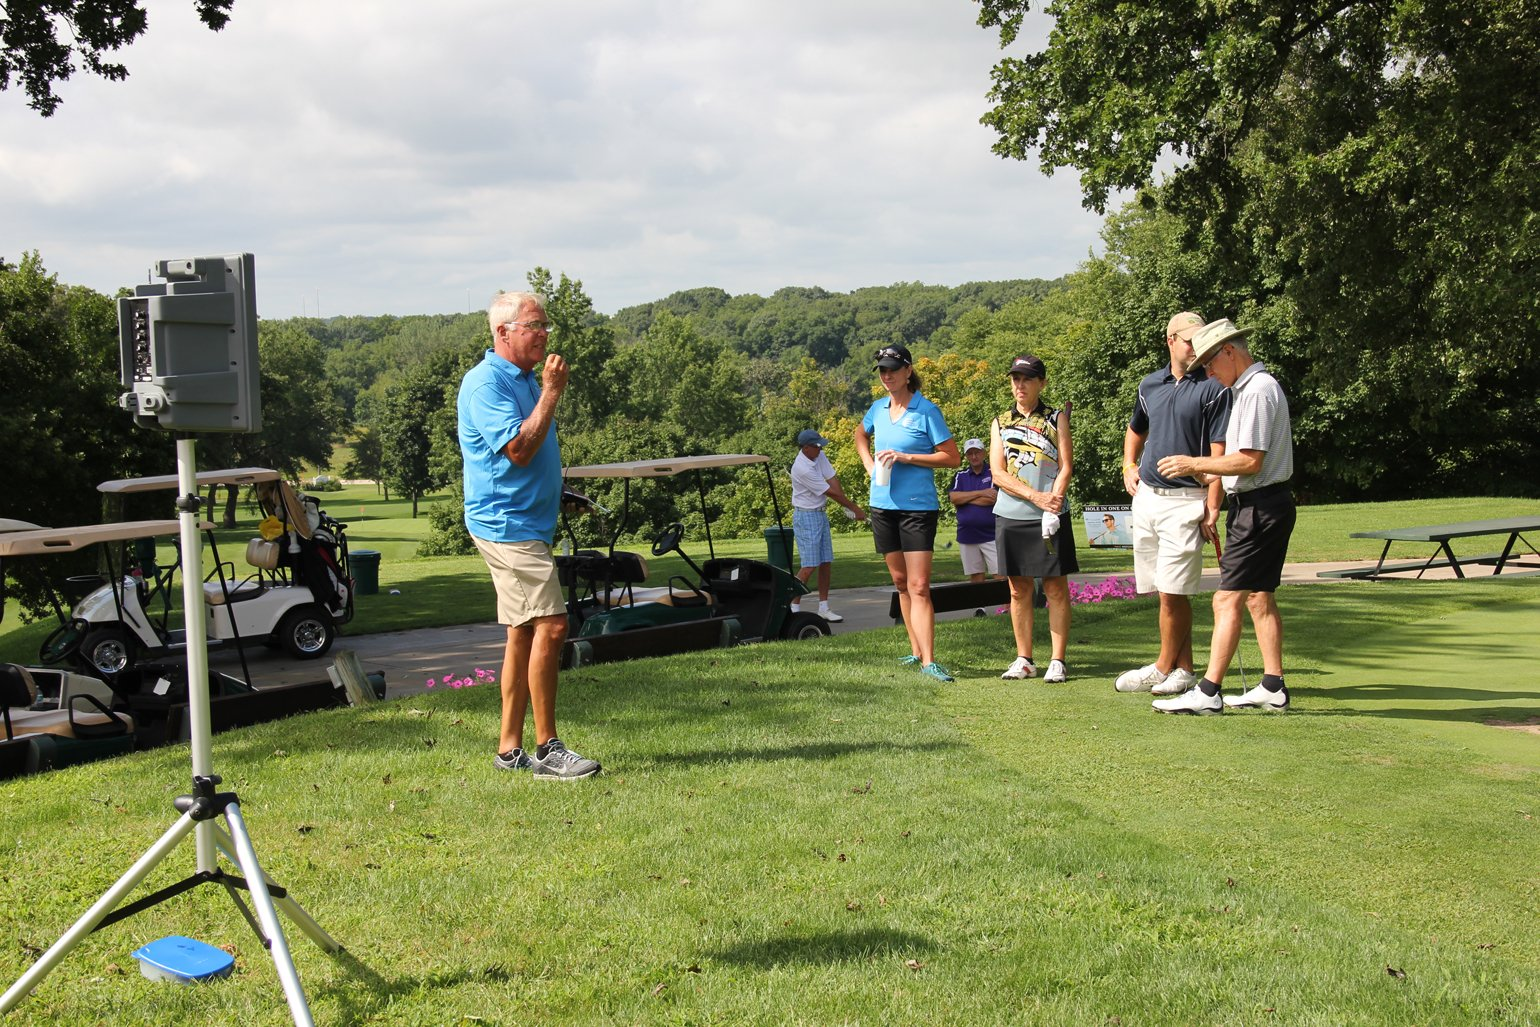 Swingin' for Healthcare Charity Classic